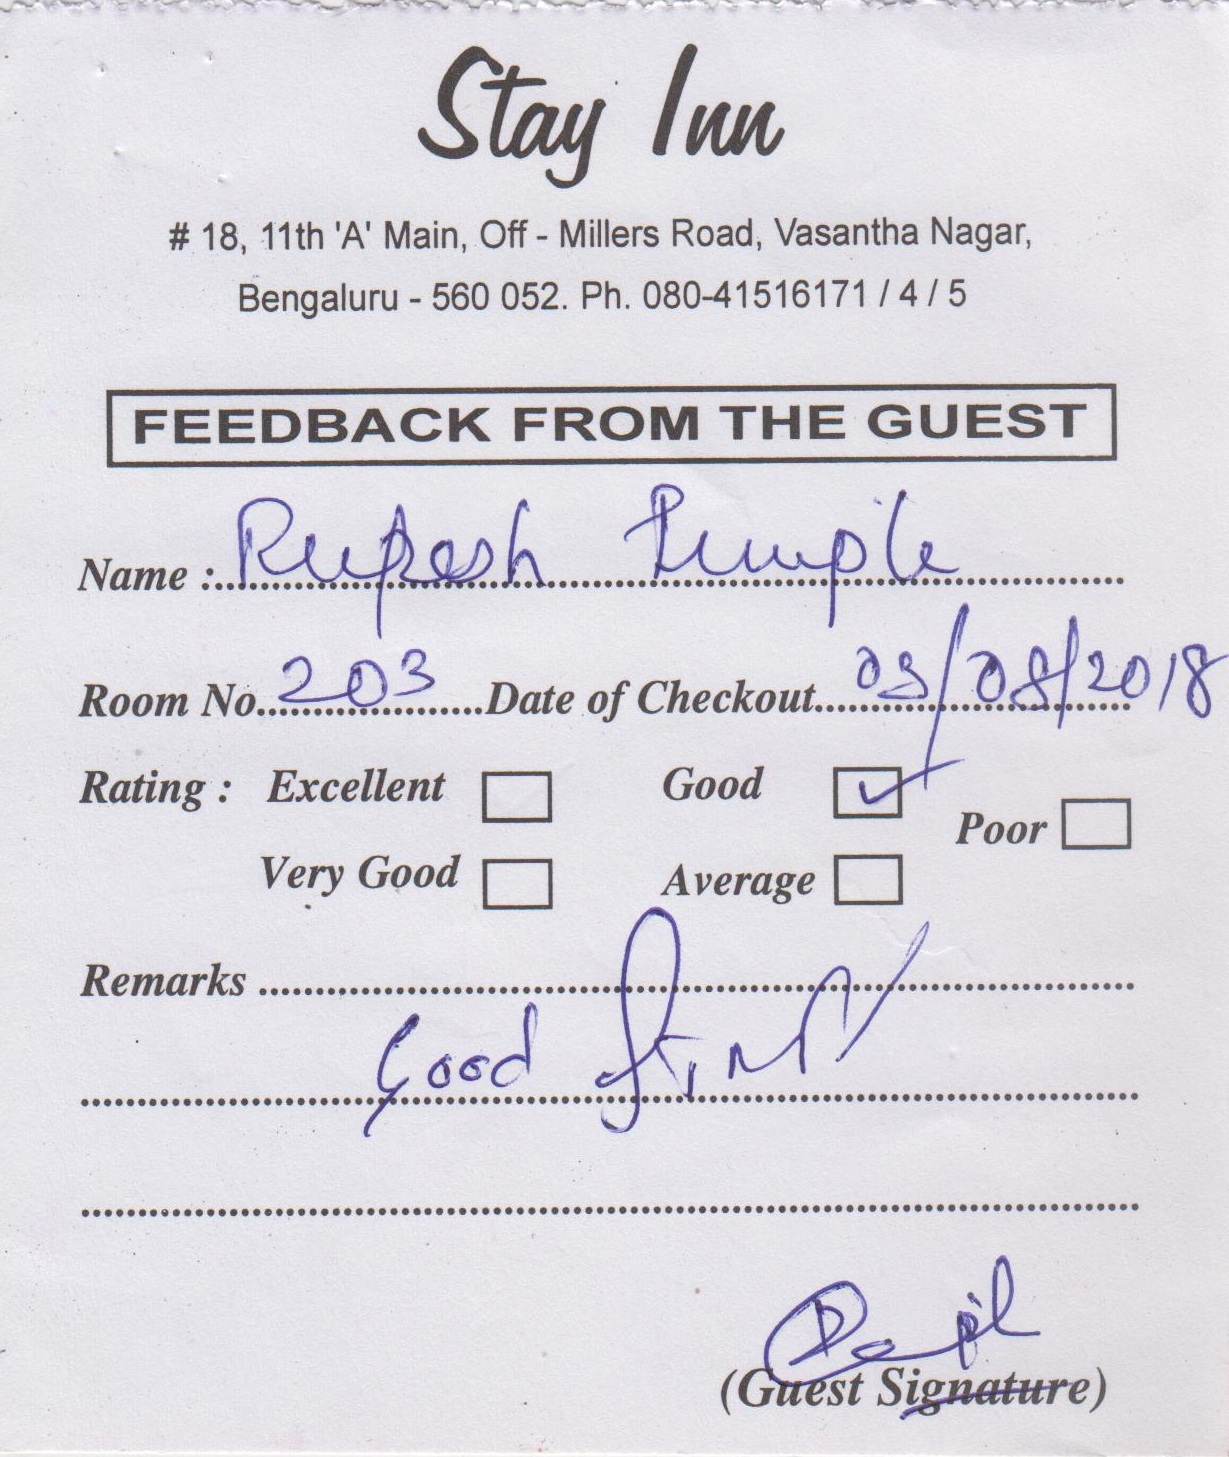 Comments Feedbacks Of Hotel Stay Inn Bangalore Customers Are Excellent 03 Rupesh Ruple 08 2018 Good Staff